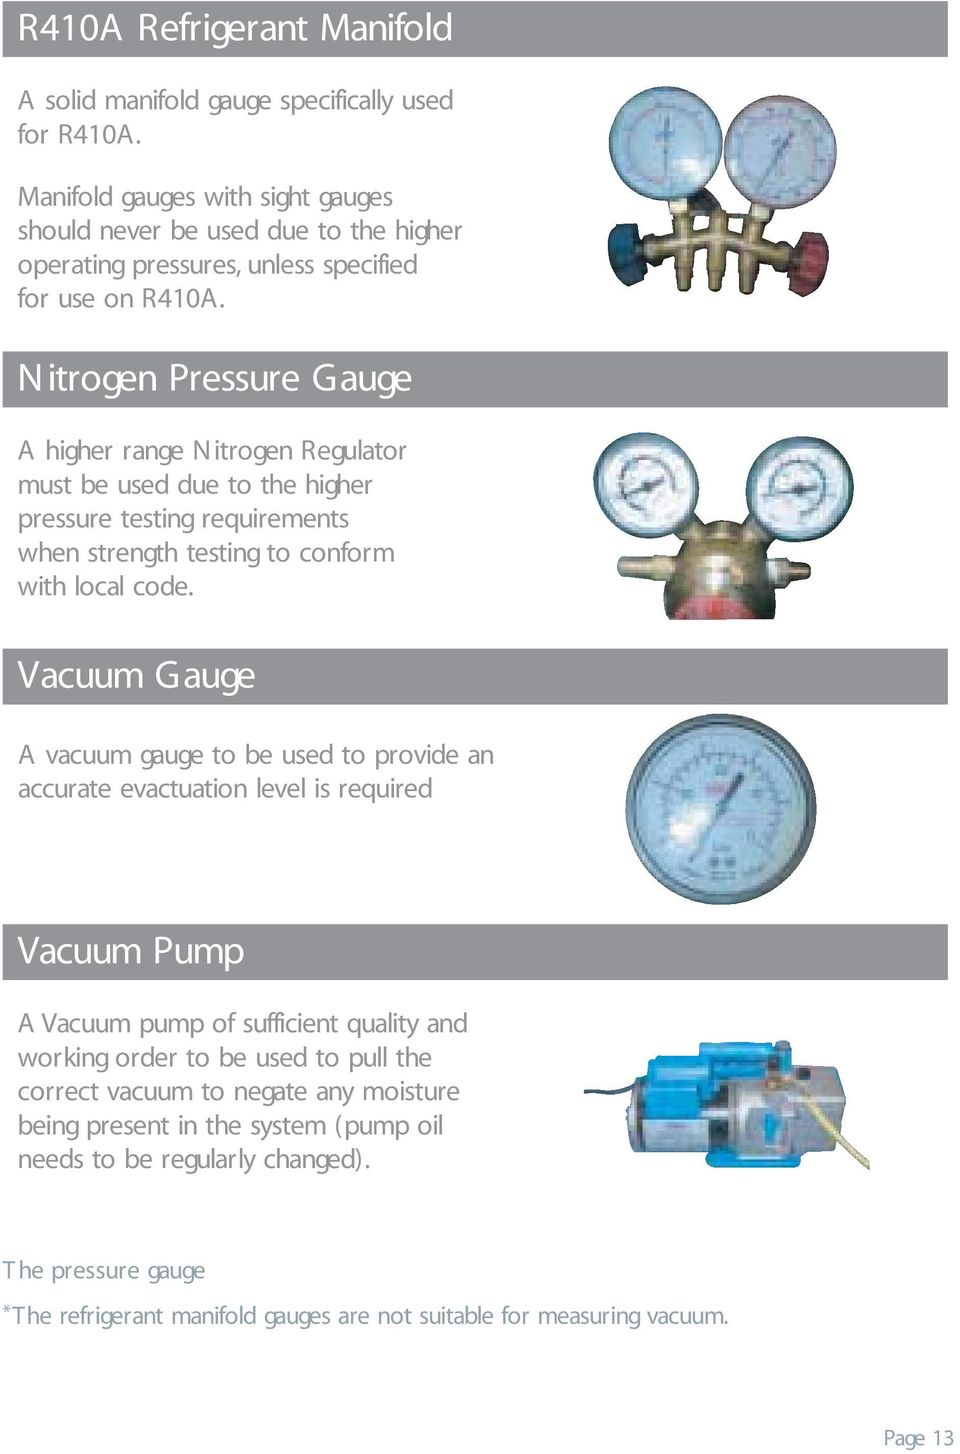 Contents >> A brief history of refrigerant R410A in detail